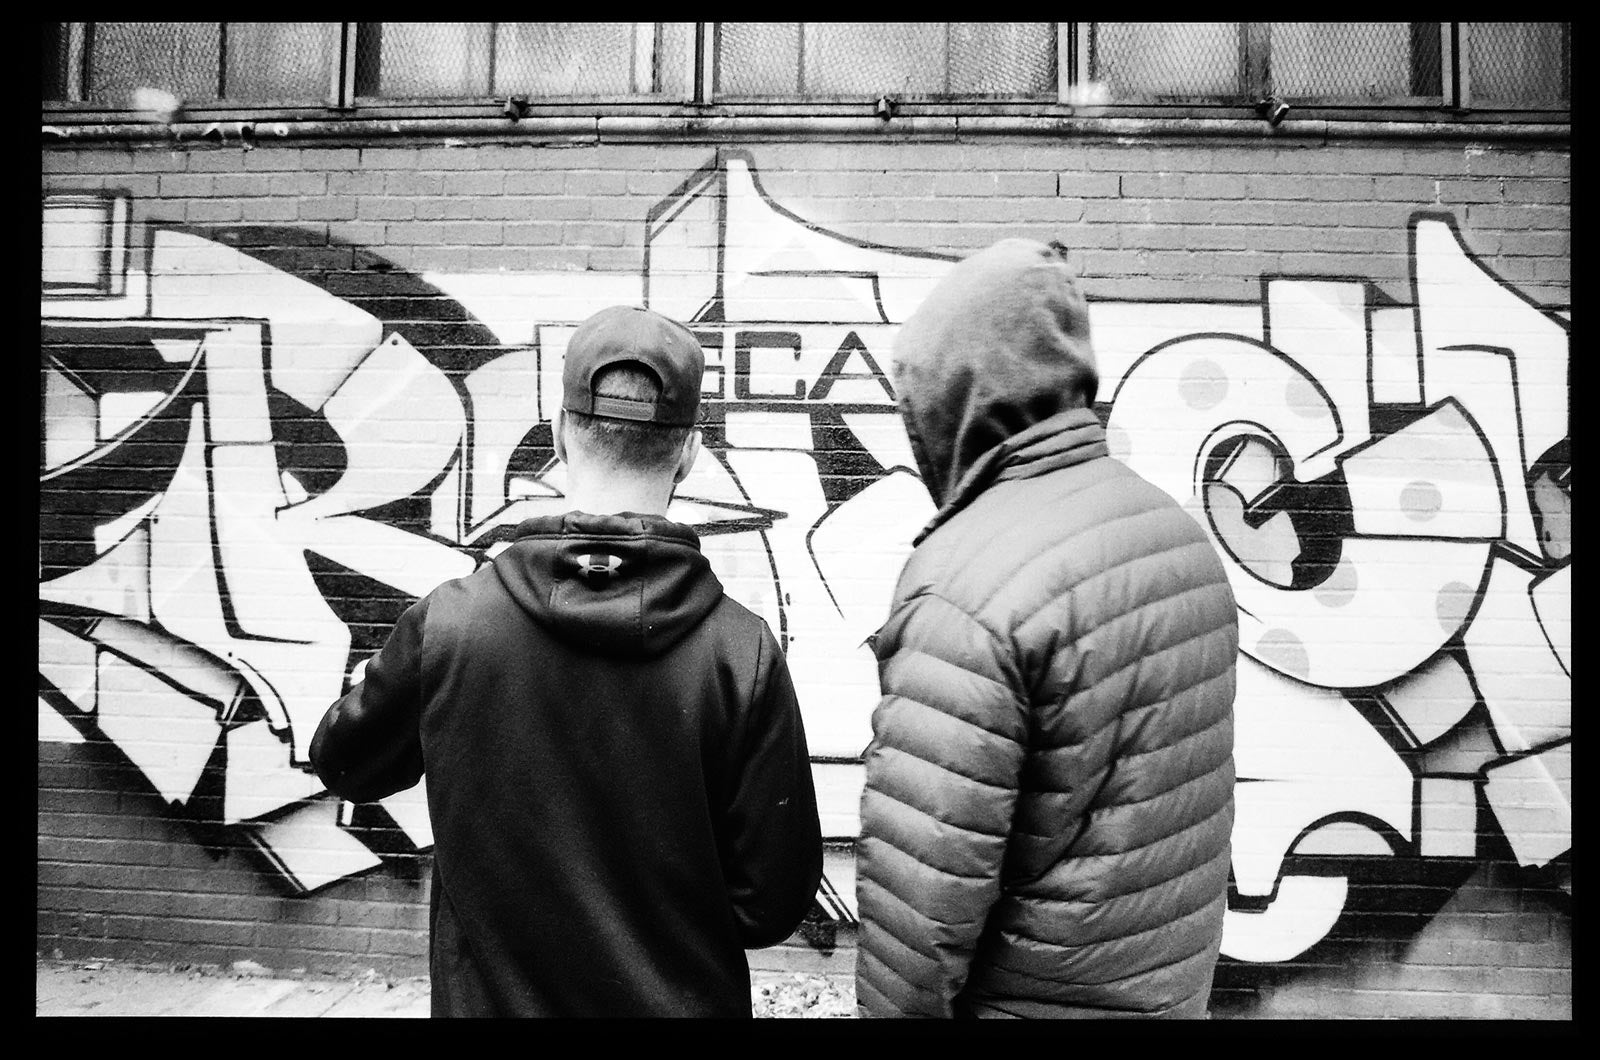 Artist Series: HOACS (The Fours Crew)